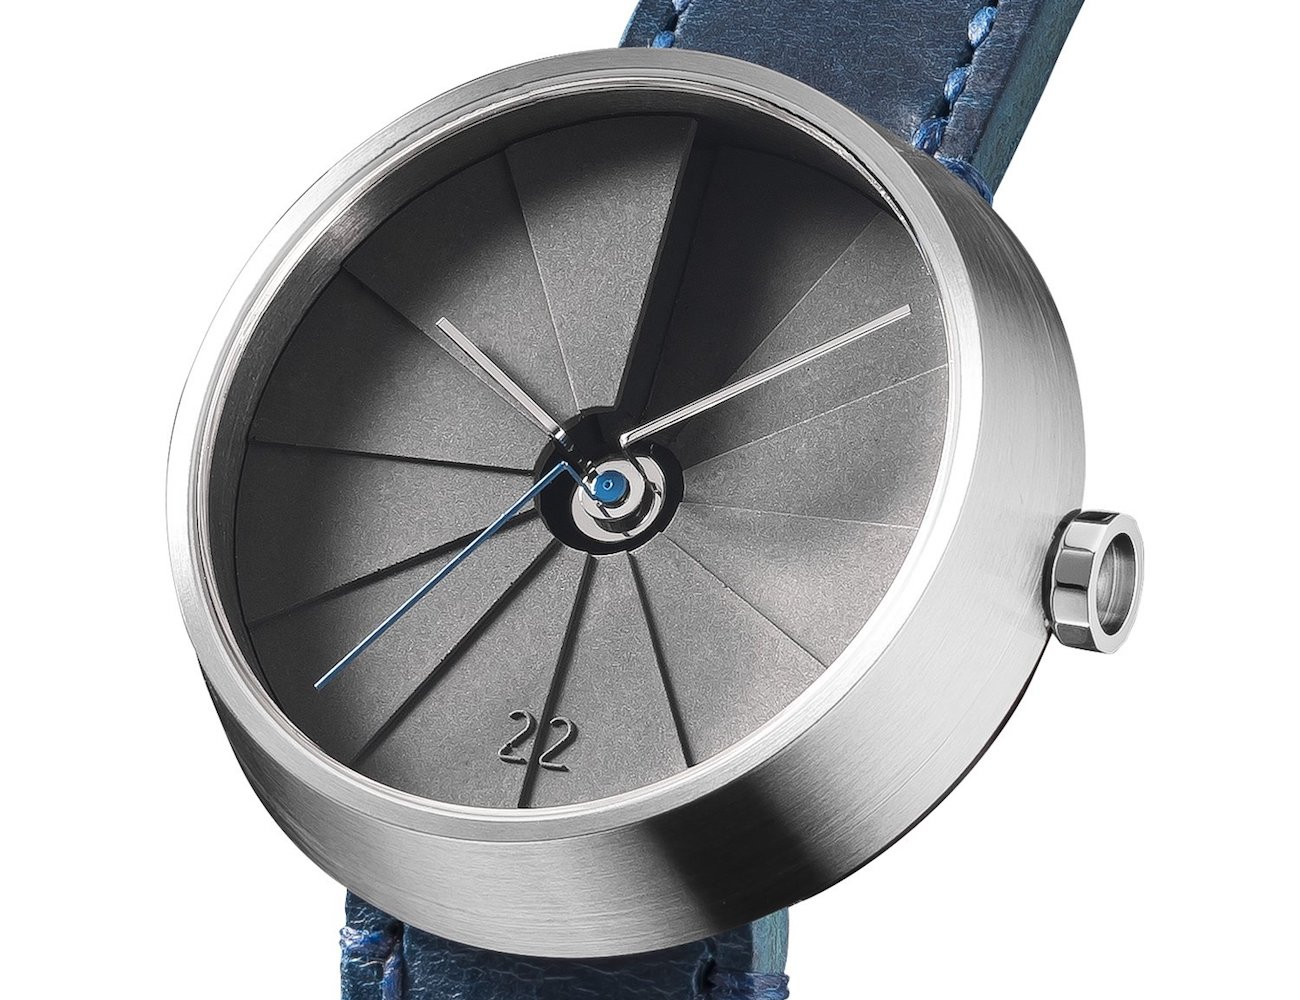 22 Design Studio 4th Harbour Edition Watch